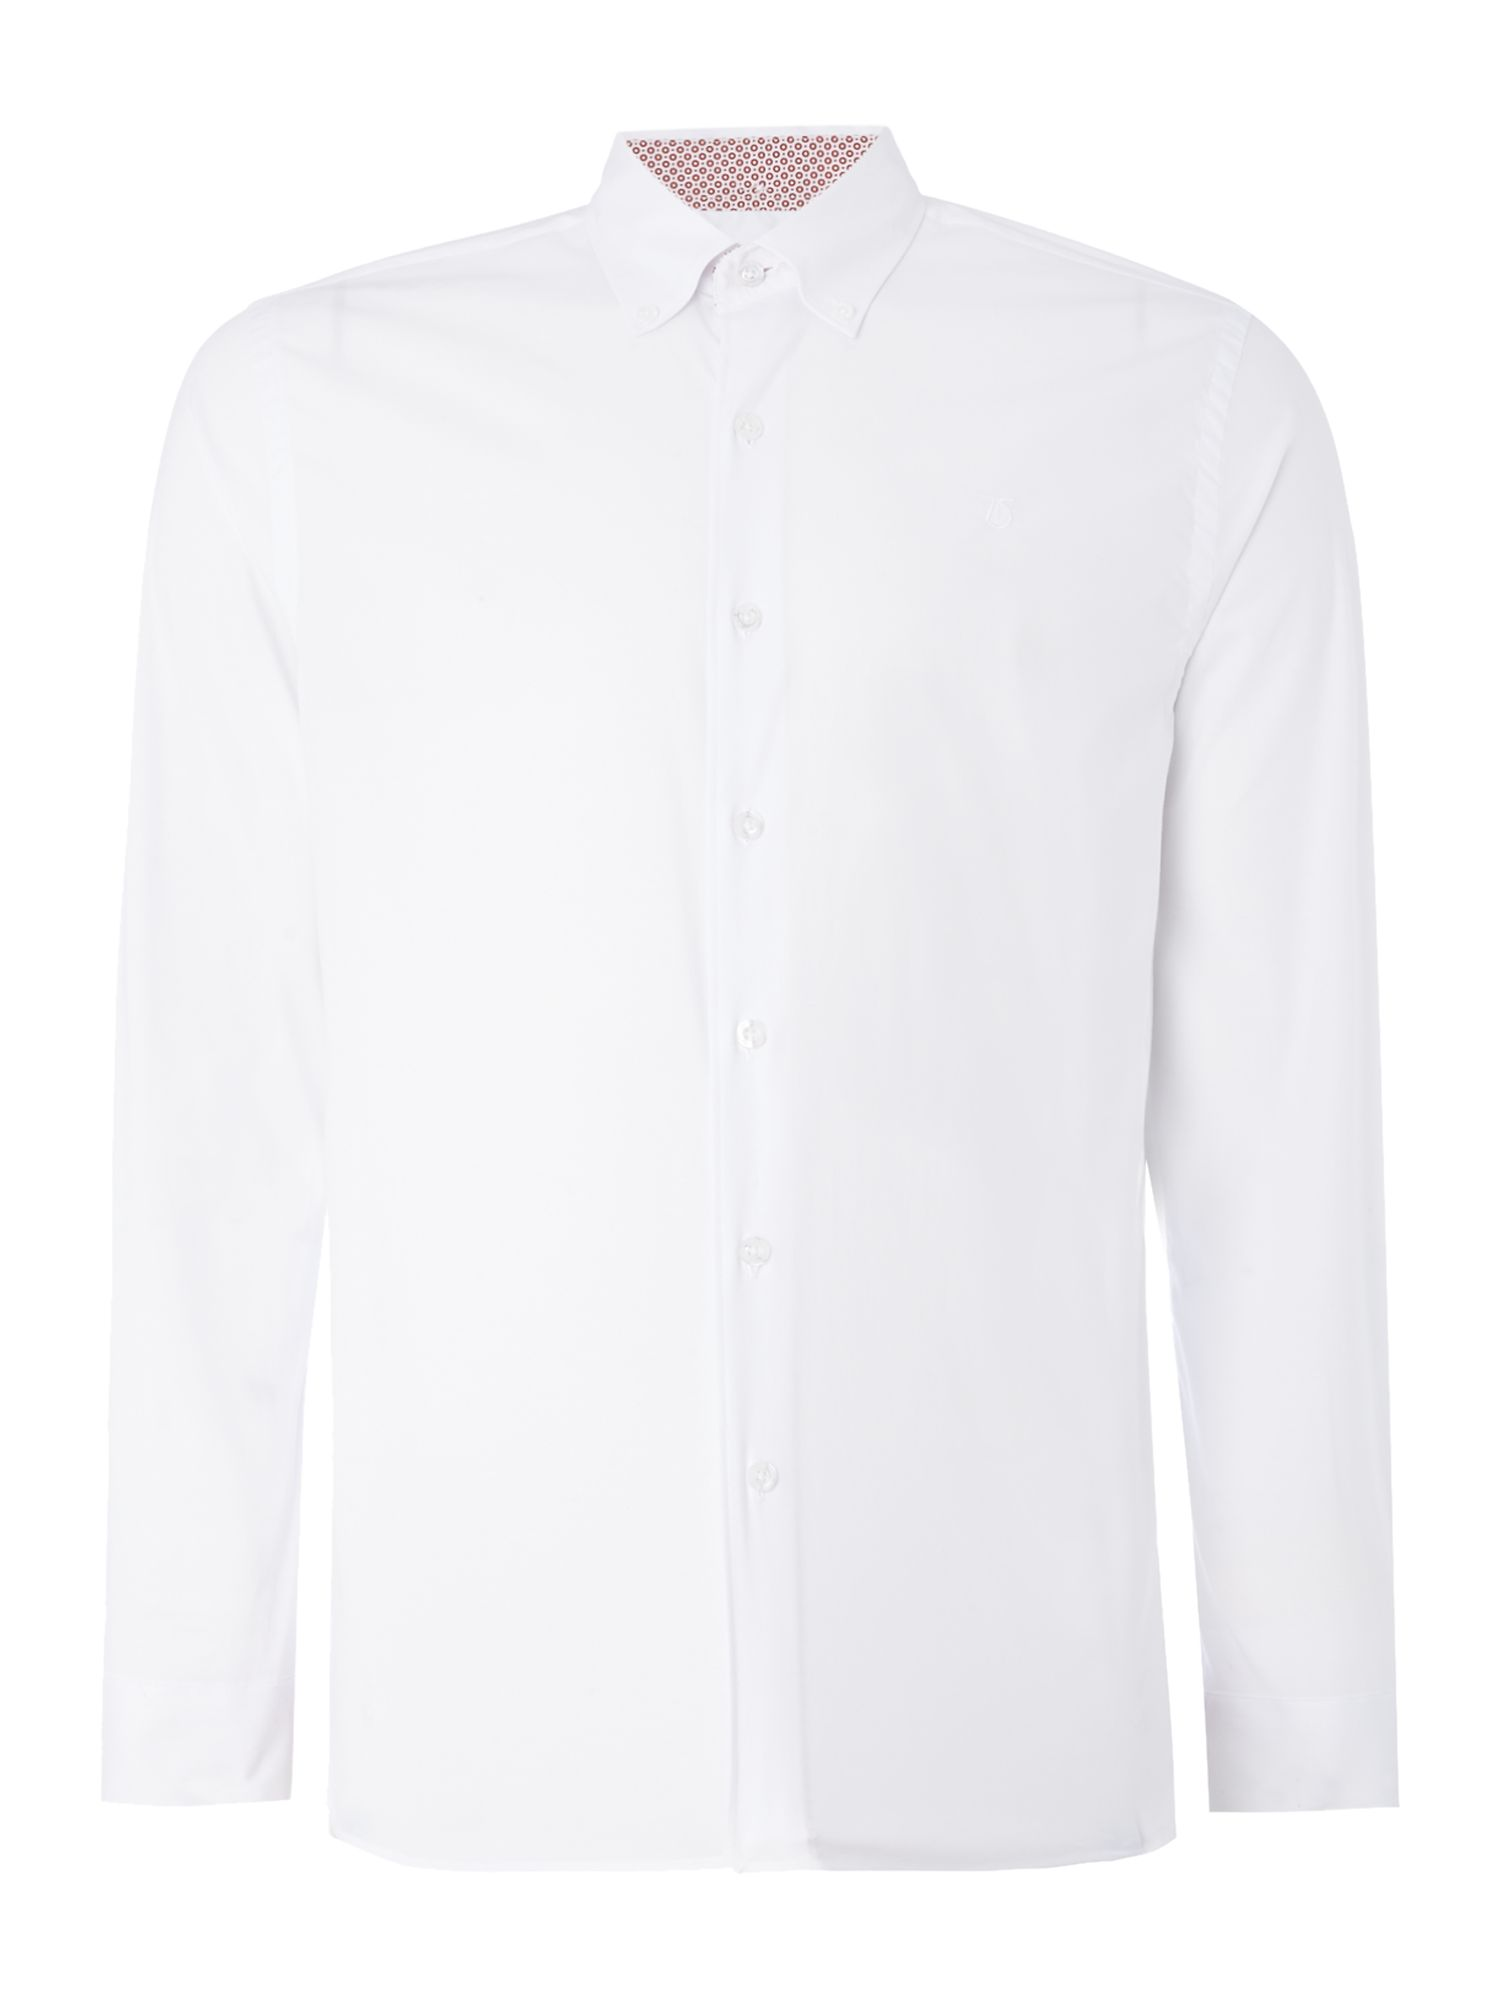 Men's Peter Werth Project Cotton Shirt With Printed Trim, White.